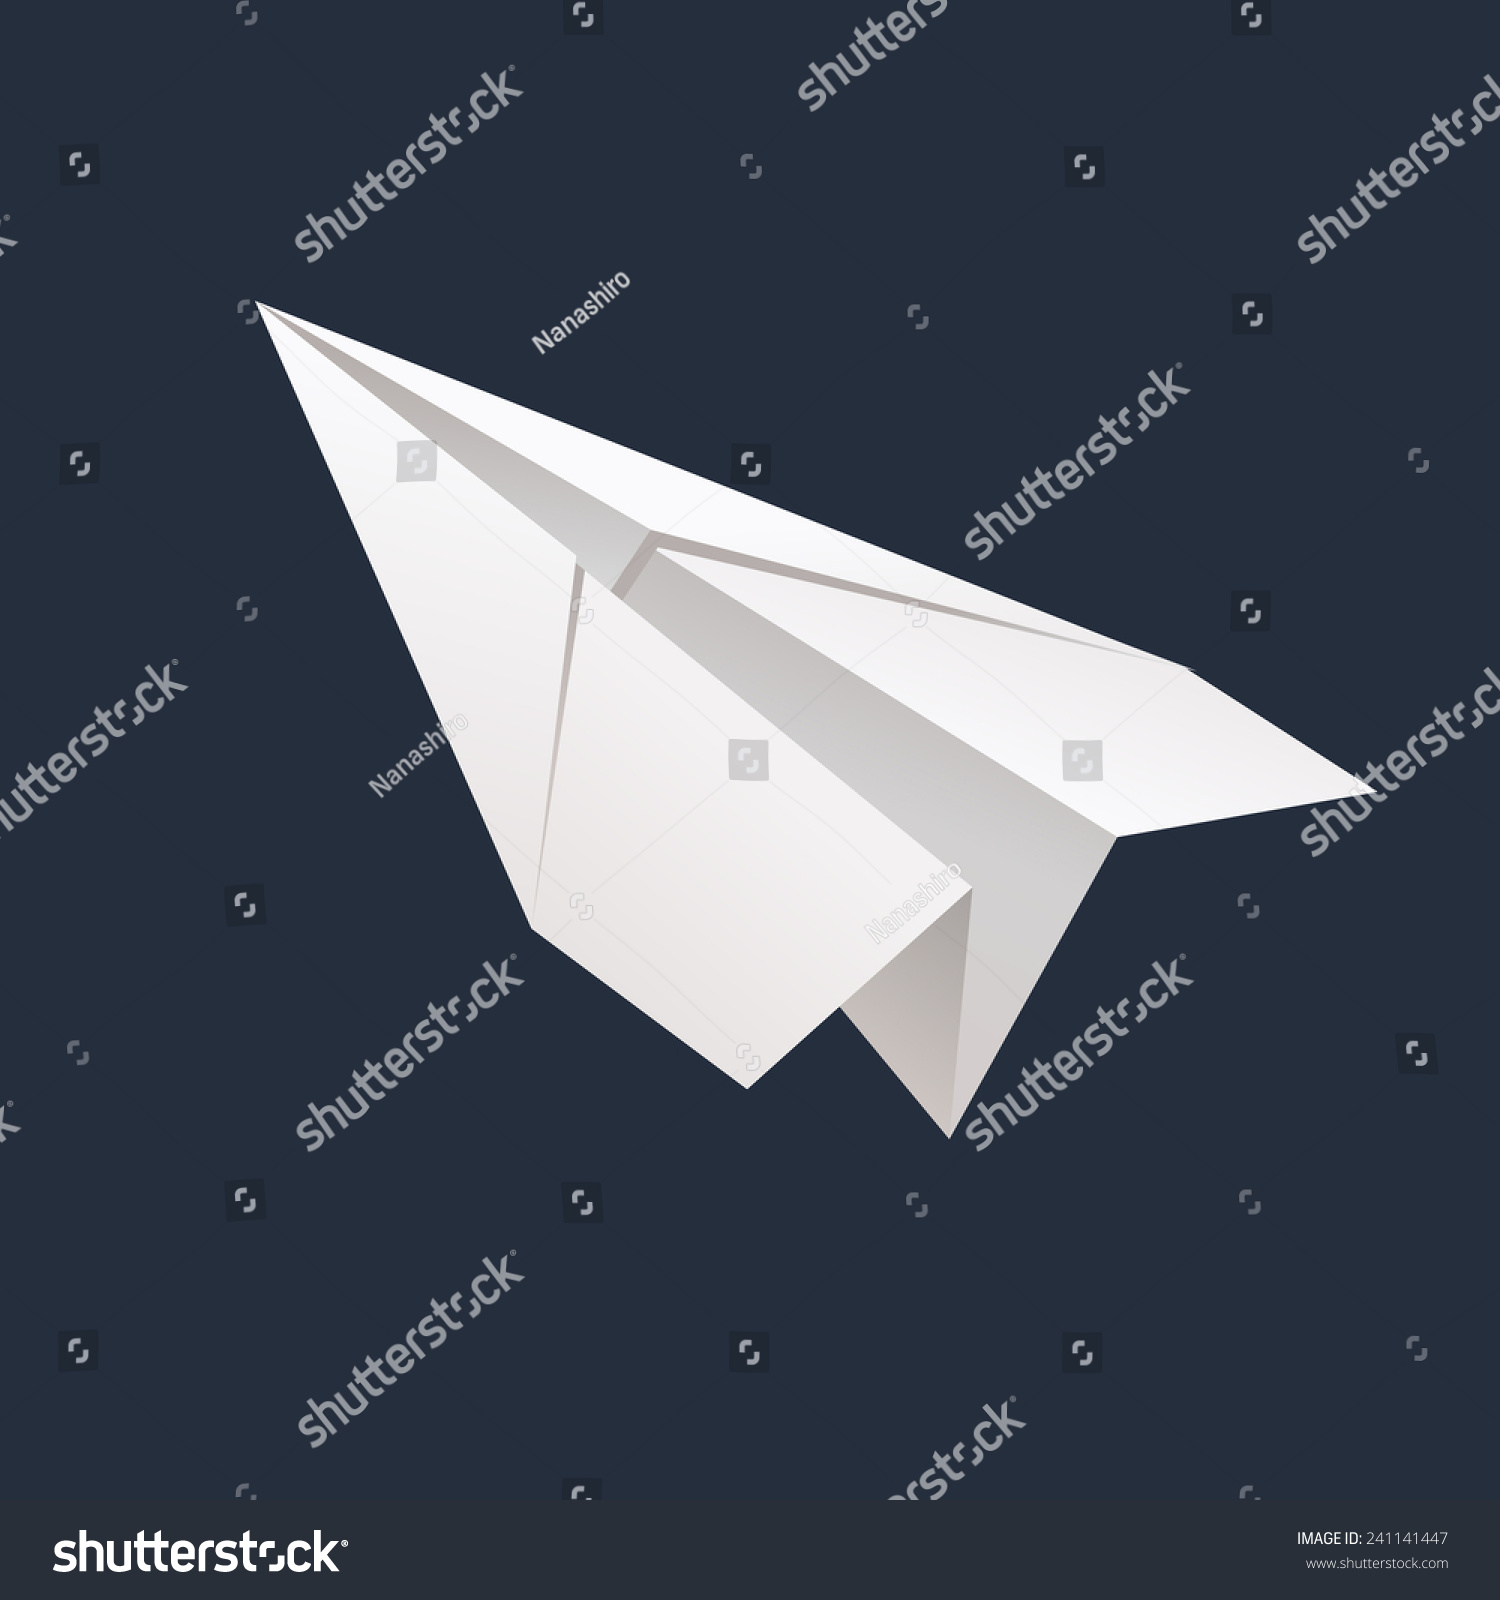 Origami Paper Airplane Vector Stock Vector 241141447 ...